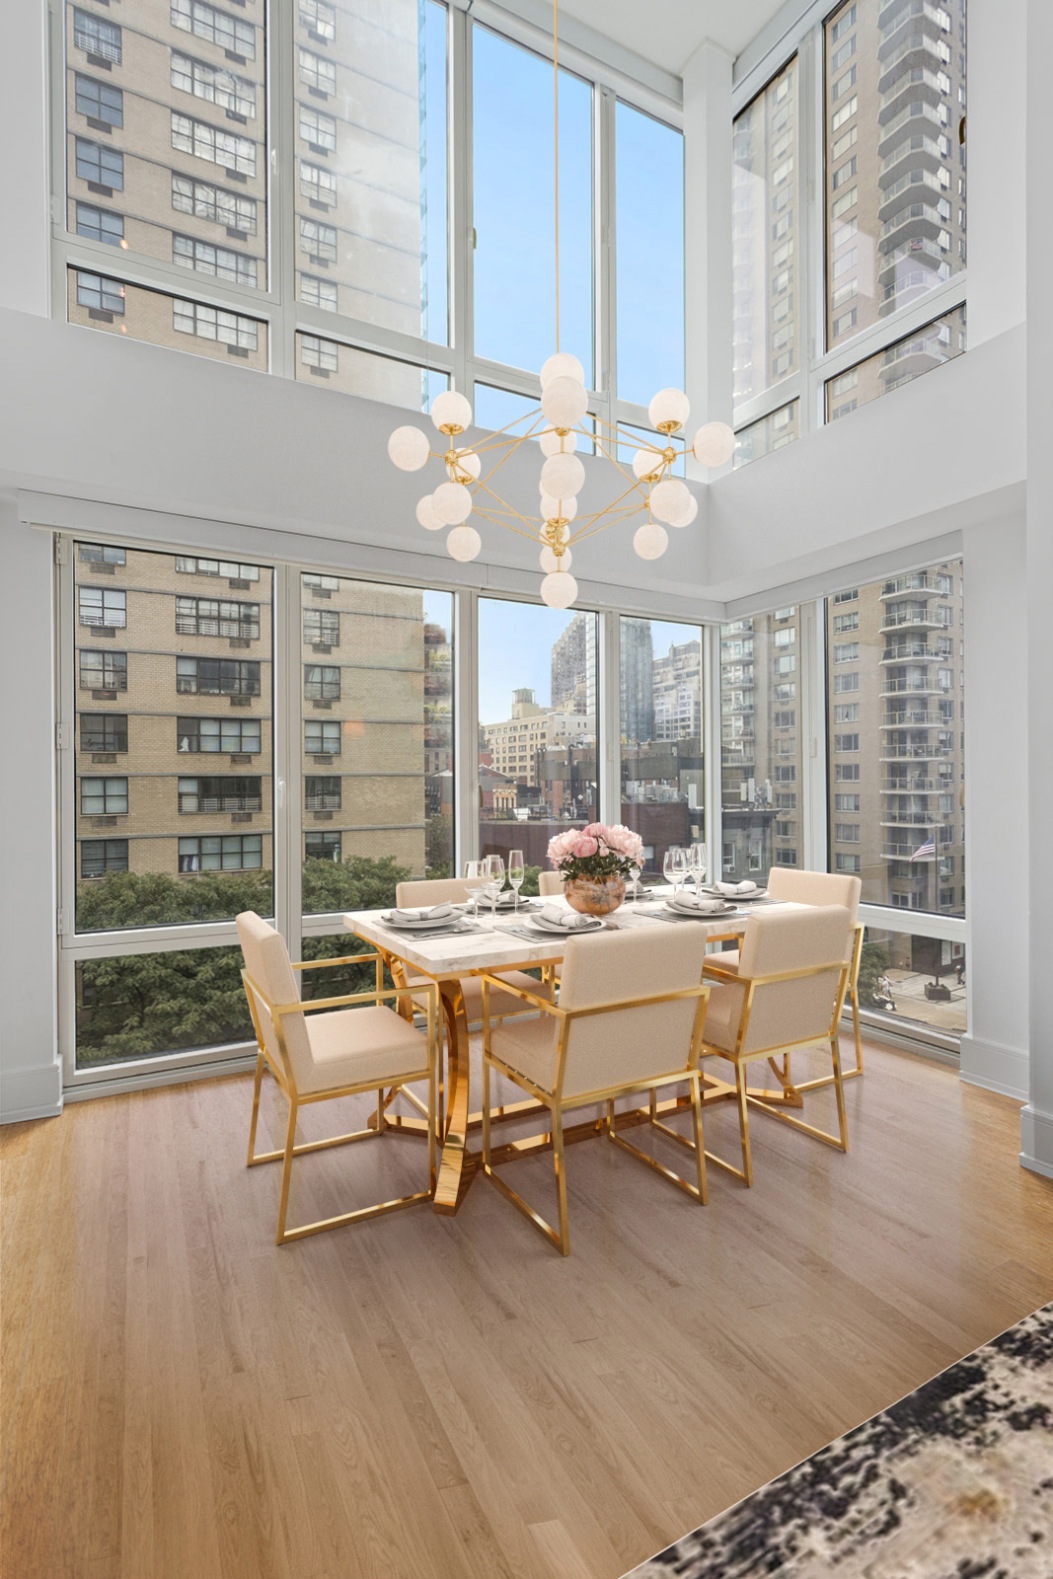 Apartment for sale at 255 East 74th Street, Apt 6-F